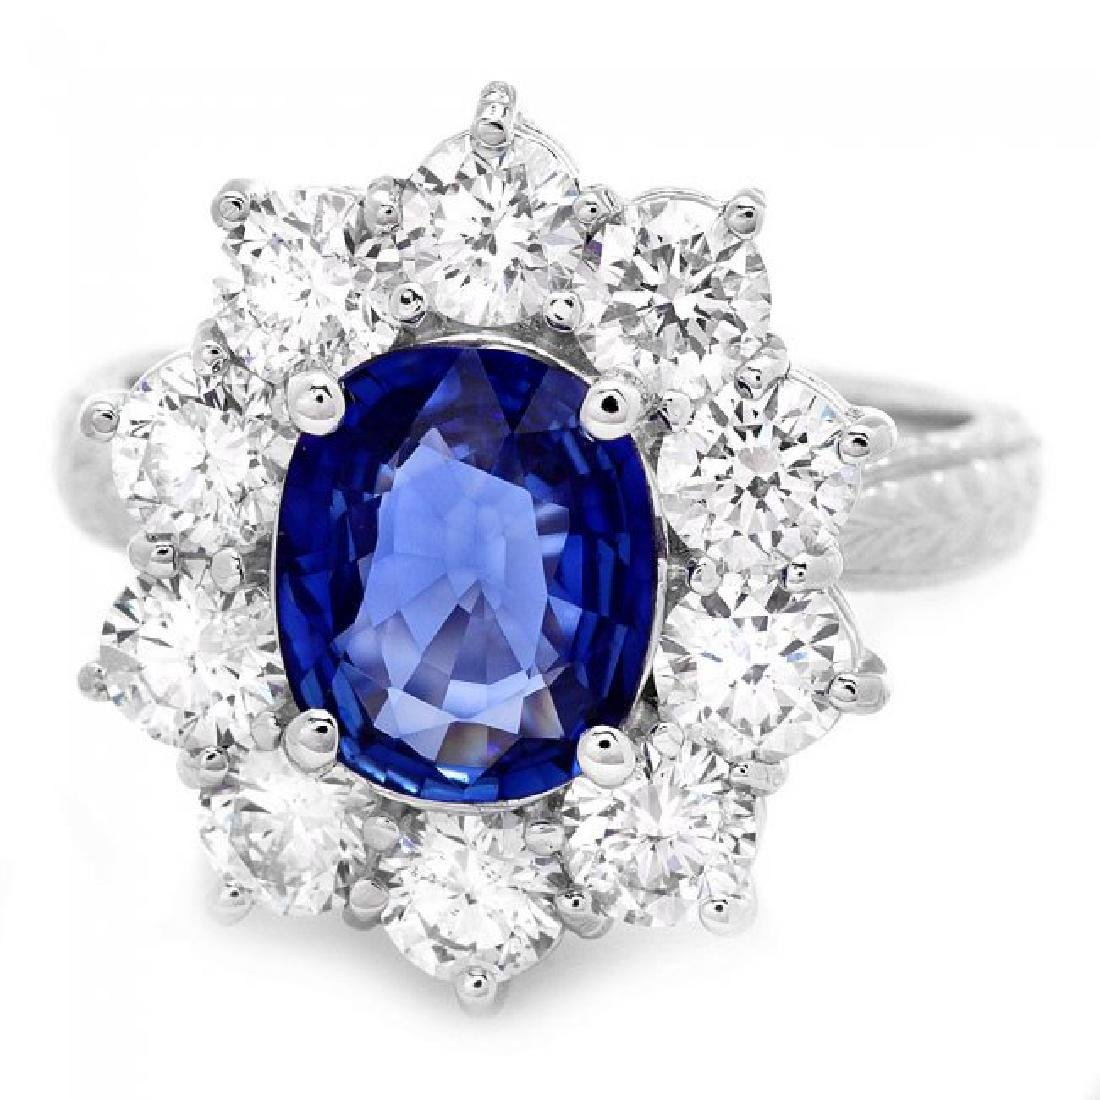 18k Gold 2.00ct Sapphire 2.00ct Diamond Ring - 2